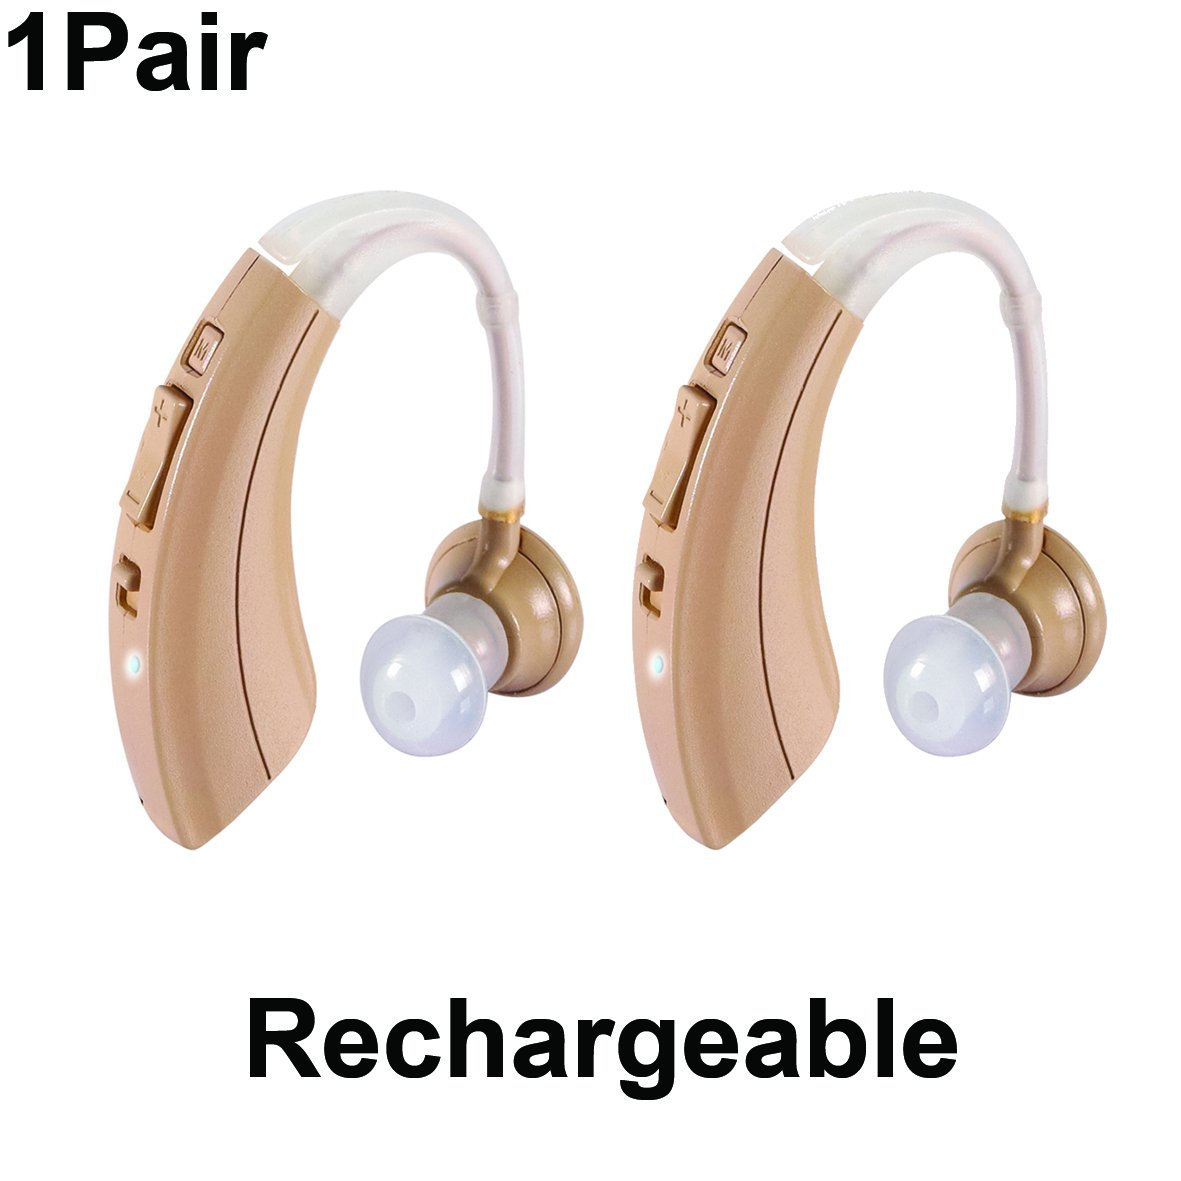 1 Pair New Ez 220t Rechargeable Digital Hearing Living Aids Amplifiers Accessories Bte Amplifier Clearly Technology To Make Voices Crystal Clear